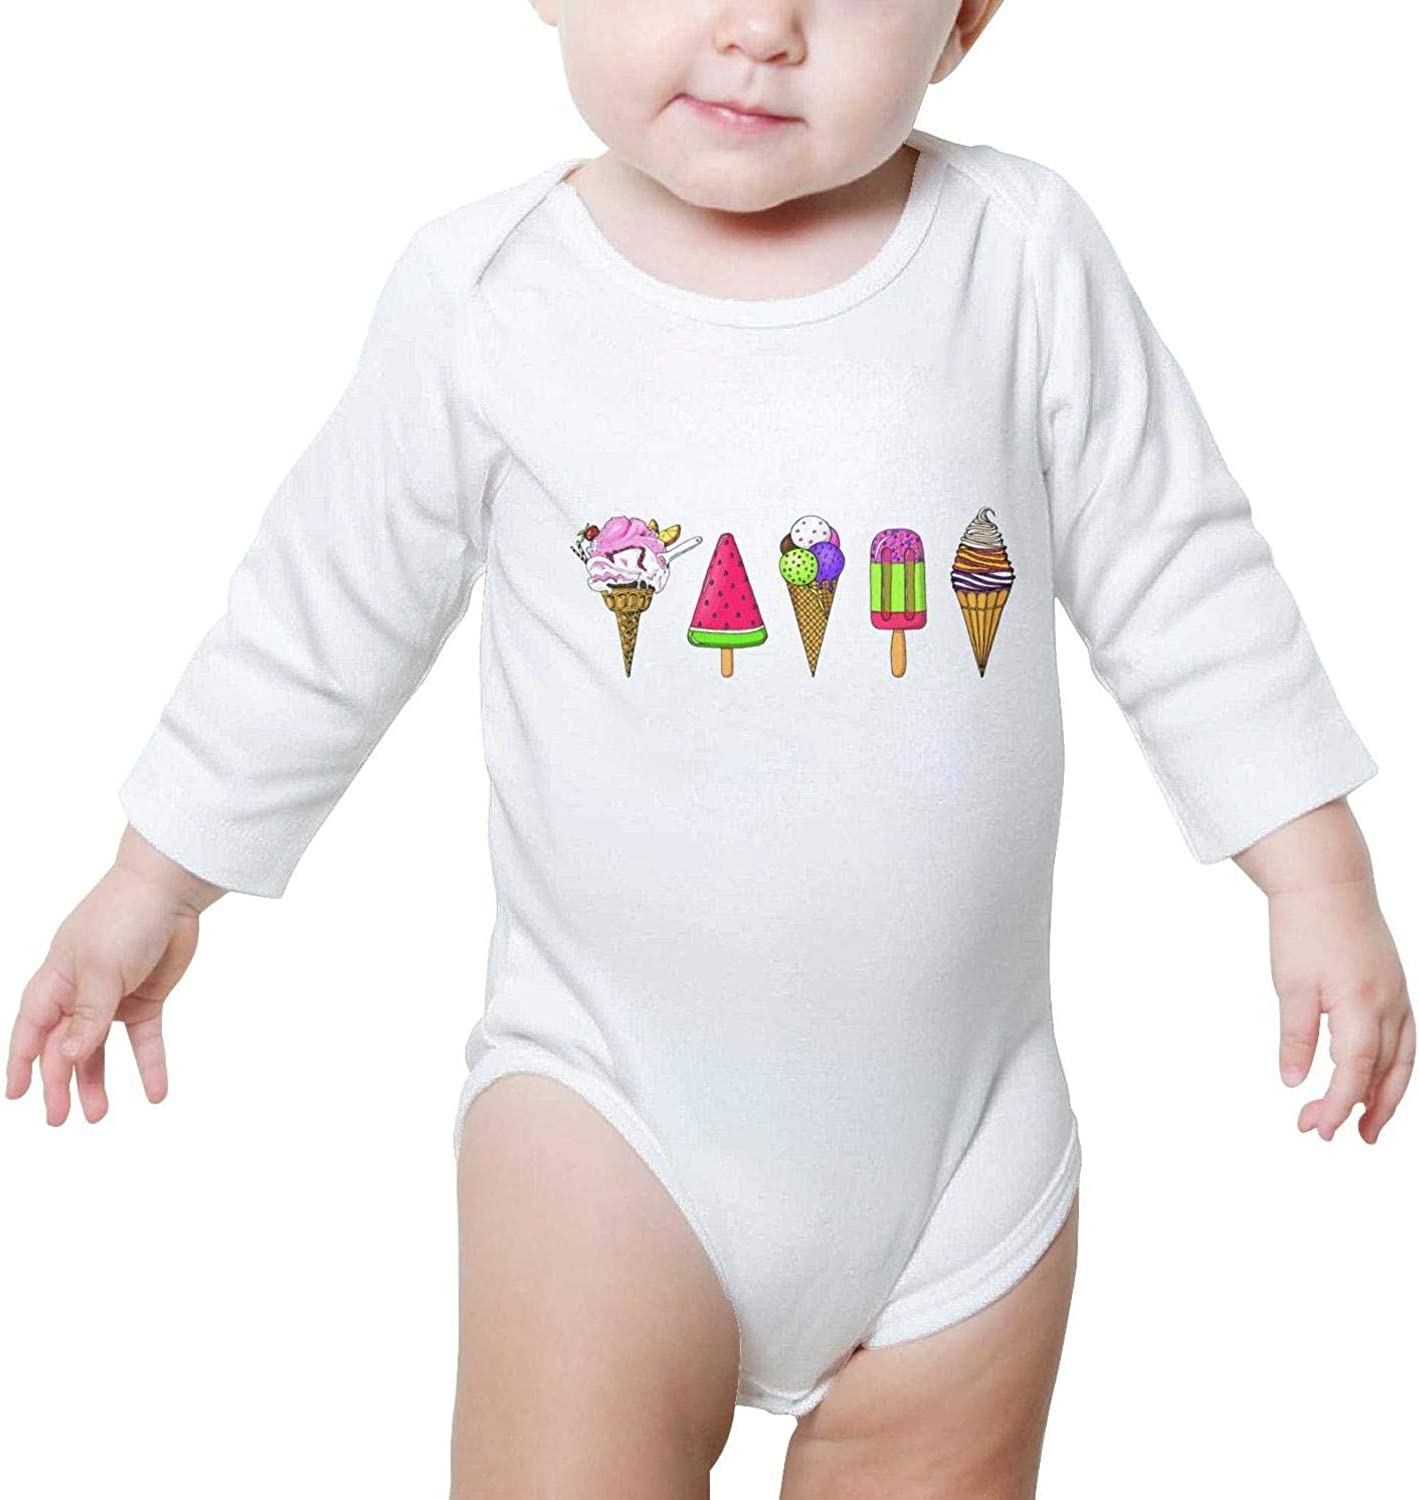 Happy National ice Cream Day 2018 Watermelon Long Sleeve Natural Organic Baby Onesie Bodysuits 0-3 Months for Kids Boys Girls